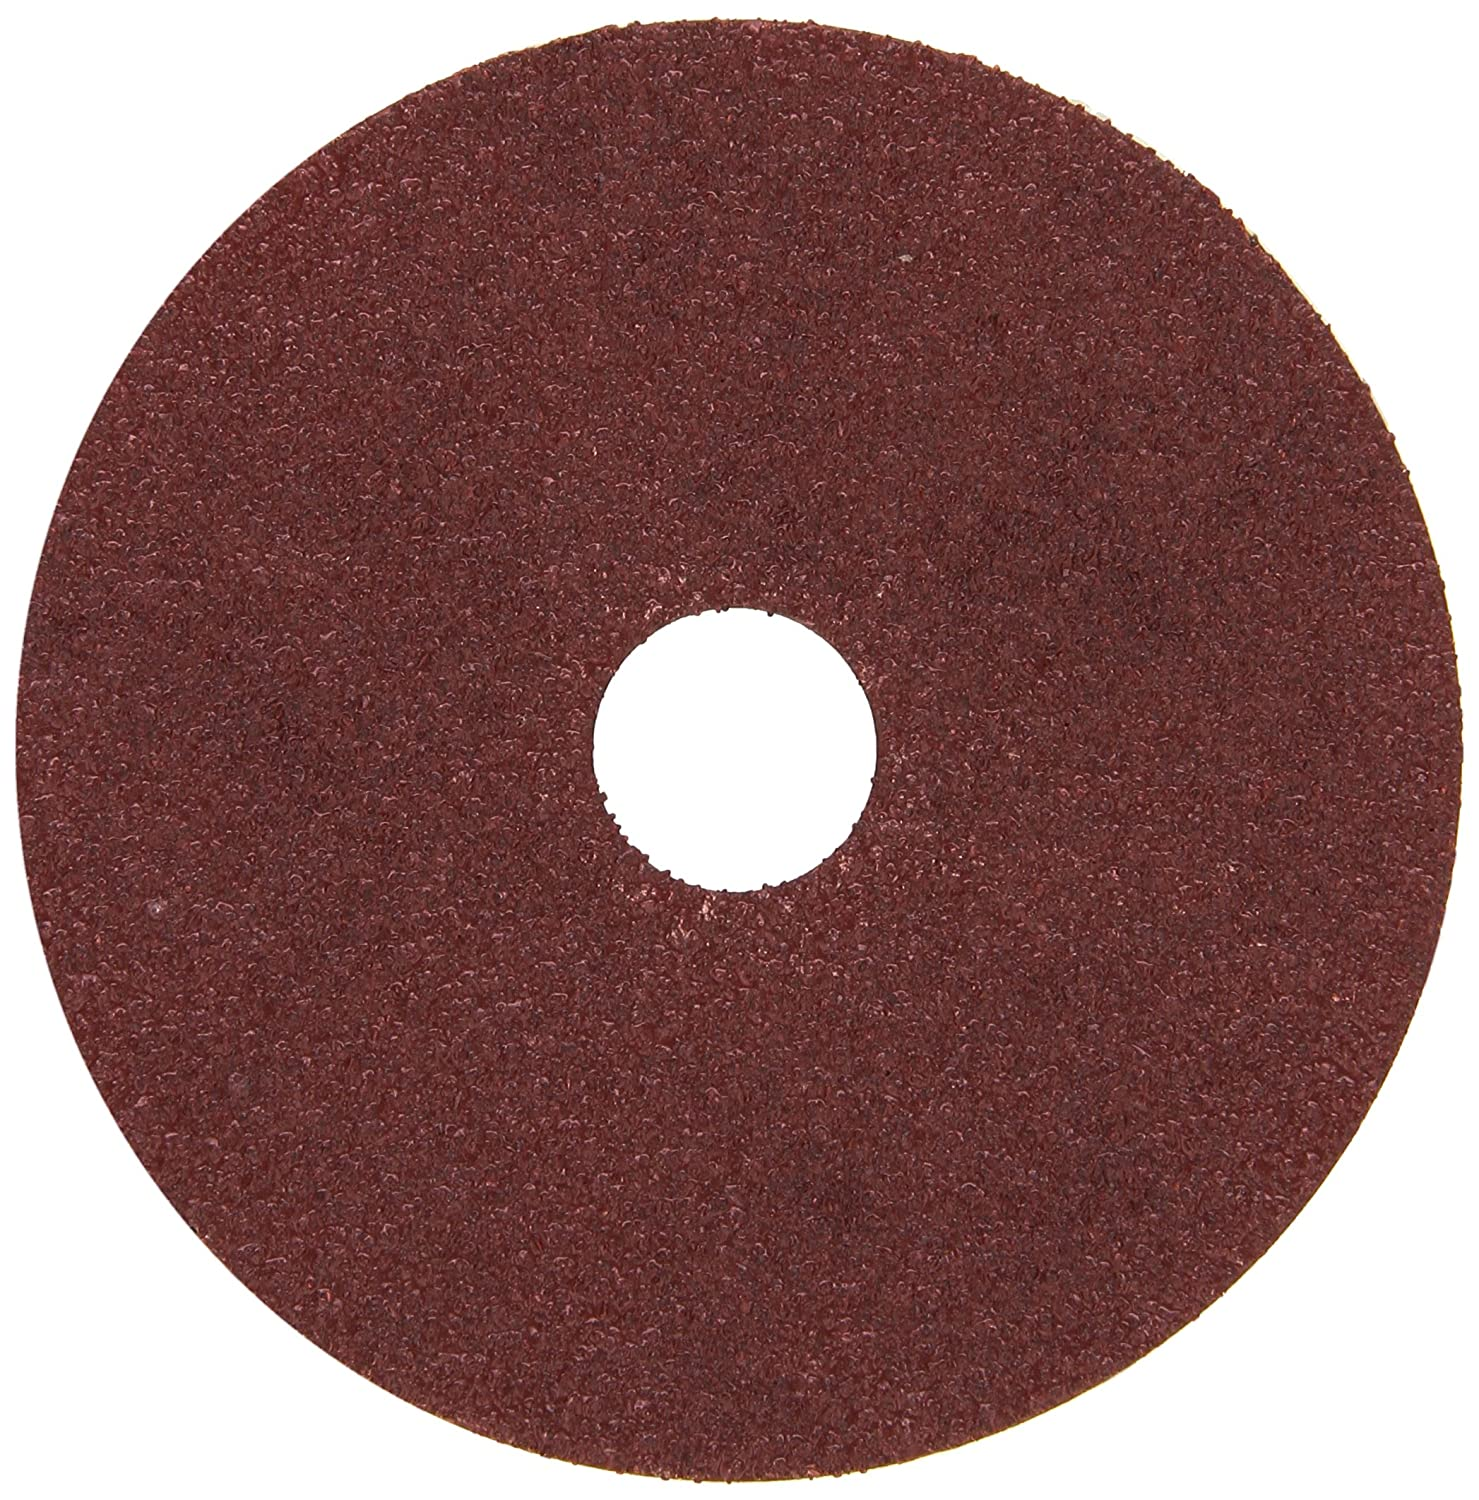 Makita 794106-A-5 4-1/2 Inch 50 Grit Abrasive Disc, 5-Pack